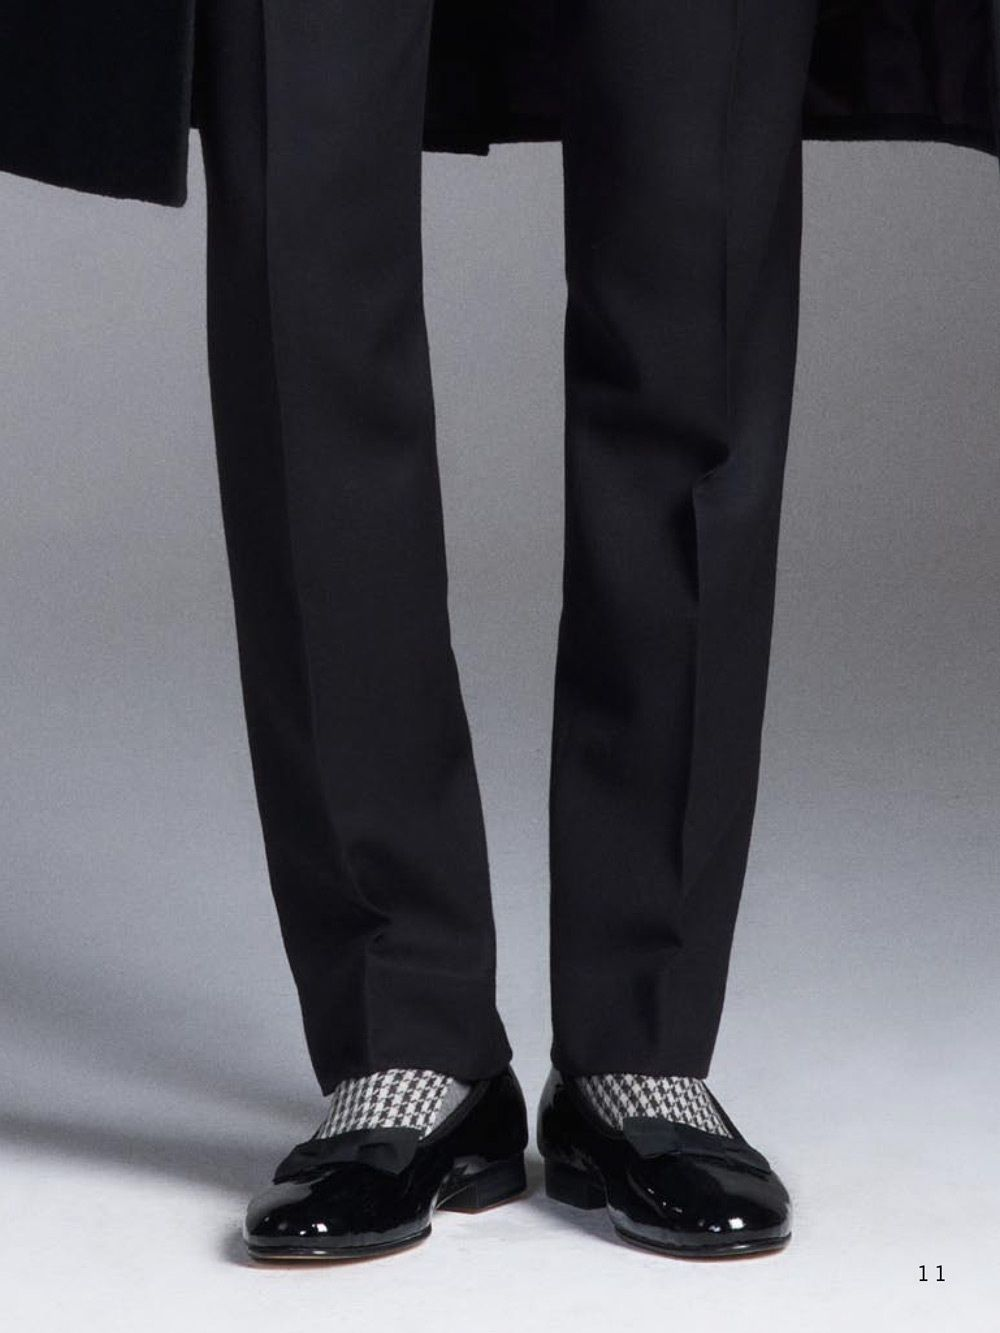 ceda35272e4 Dressed to kill in houndstooth socks and patent leather opera pumps ZsaZsa  Bellagio – Like No Other  menswear